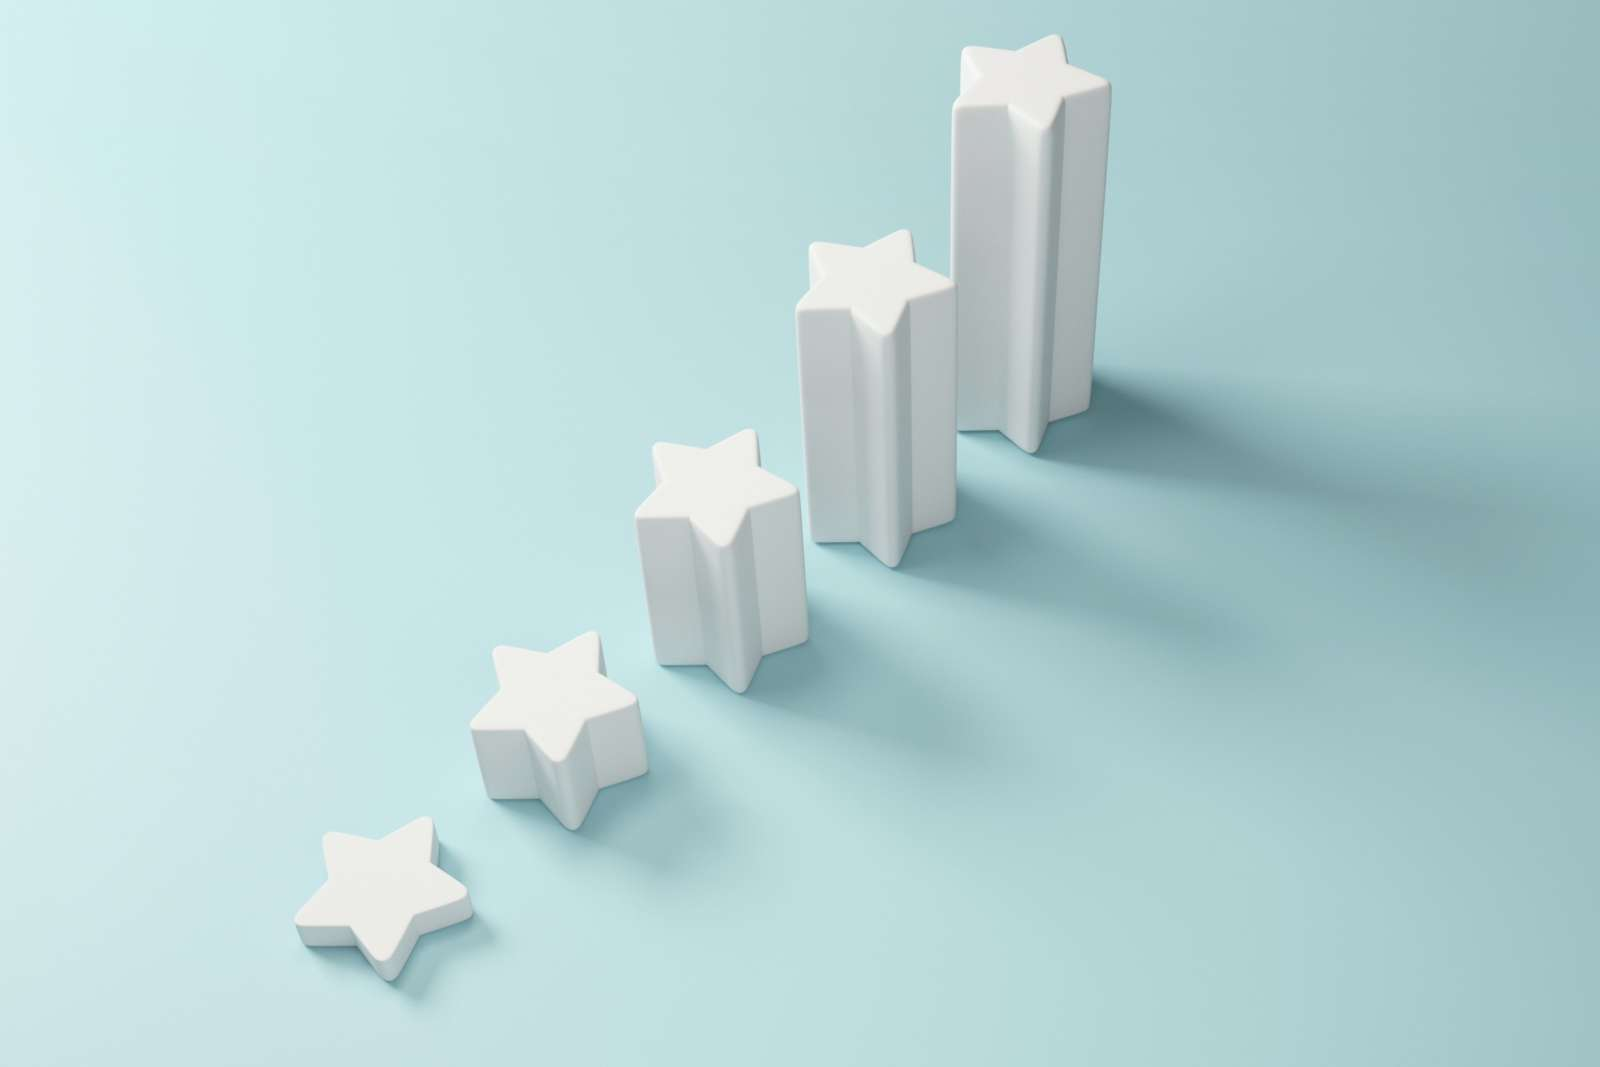 Five white three dimensional stars increase in height each a step above the one before it. The star steps are on a light blue backdrop.